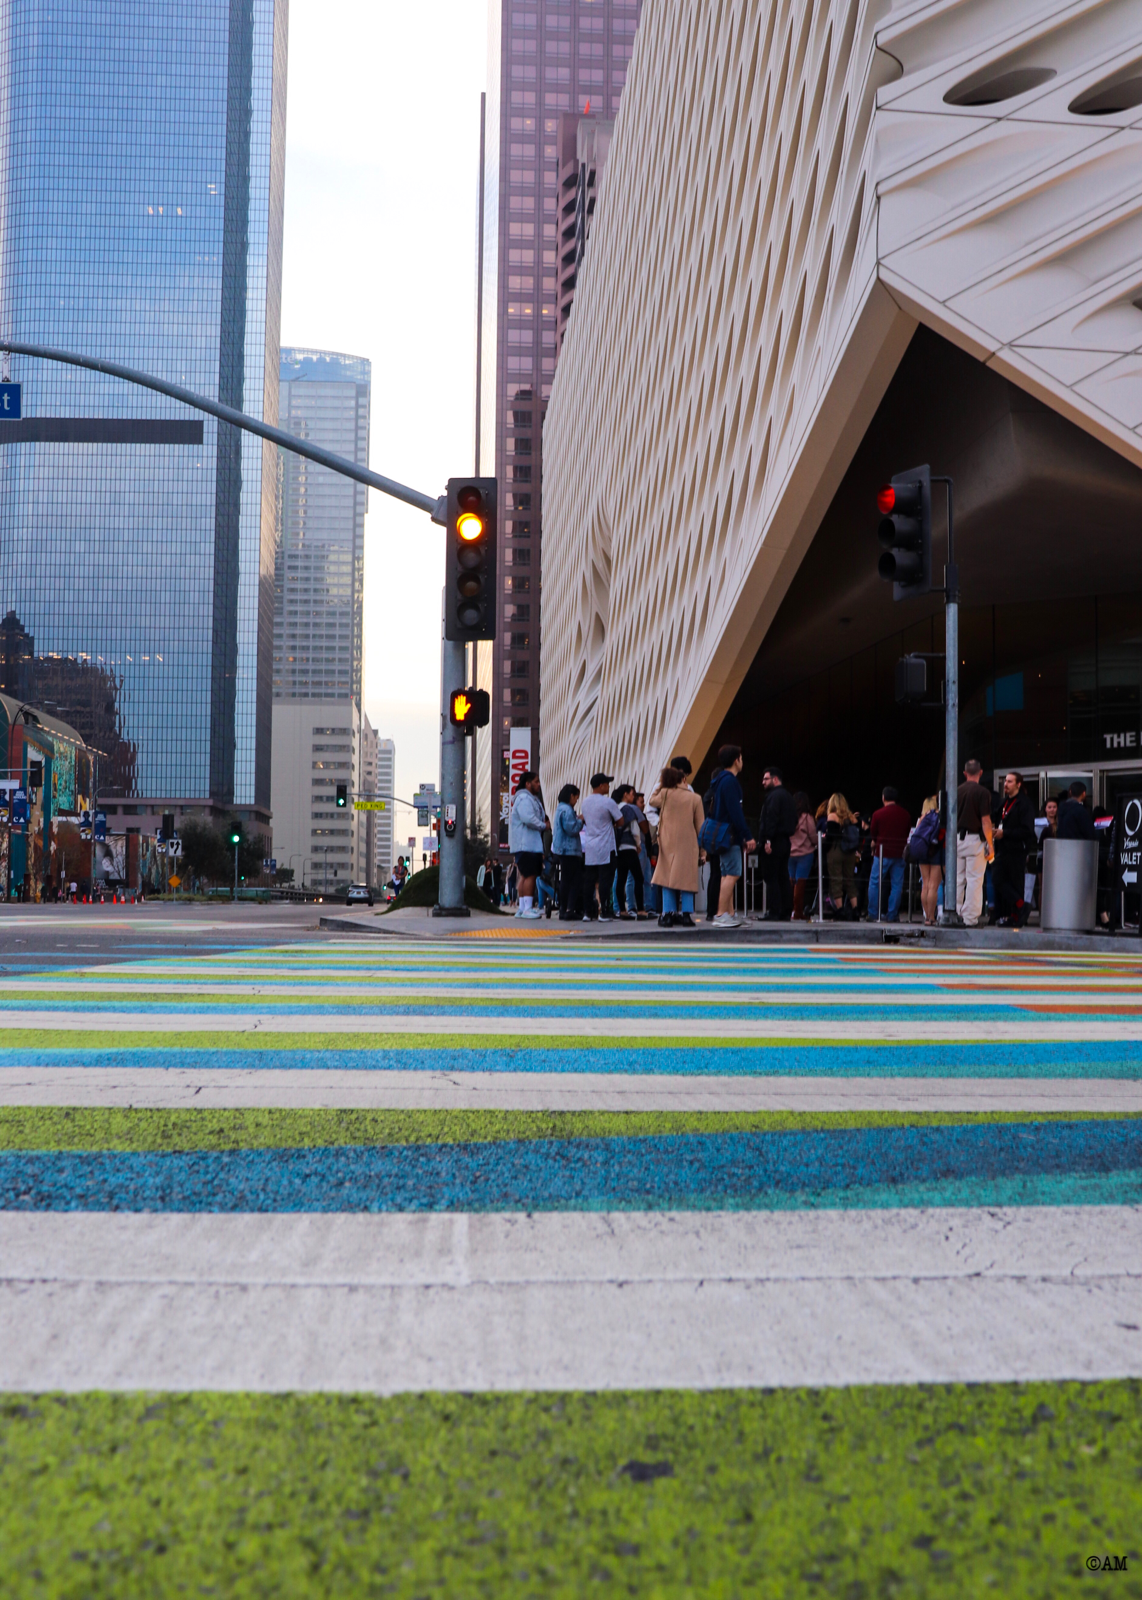 The multi-colored crosswalk by the Venezuelan artist, Carlos Cruz-Diez, outside The Broad.